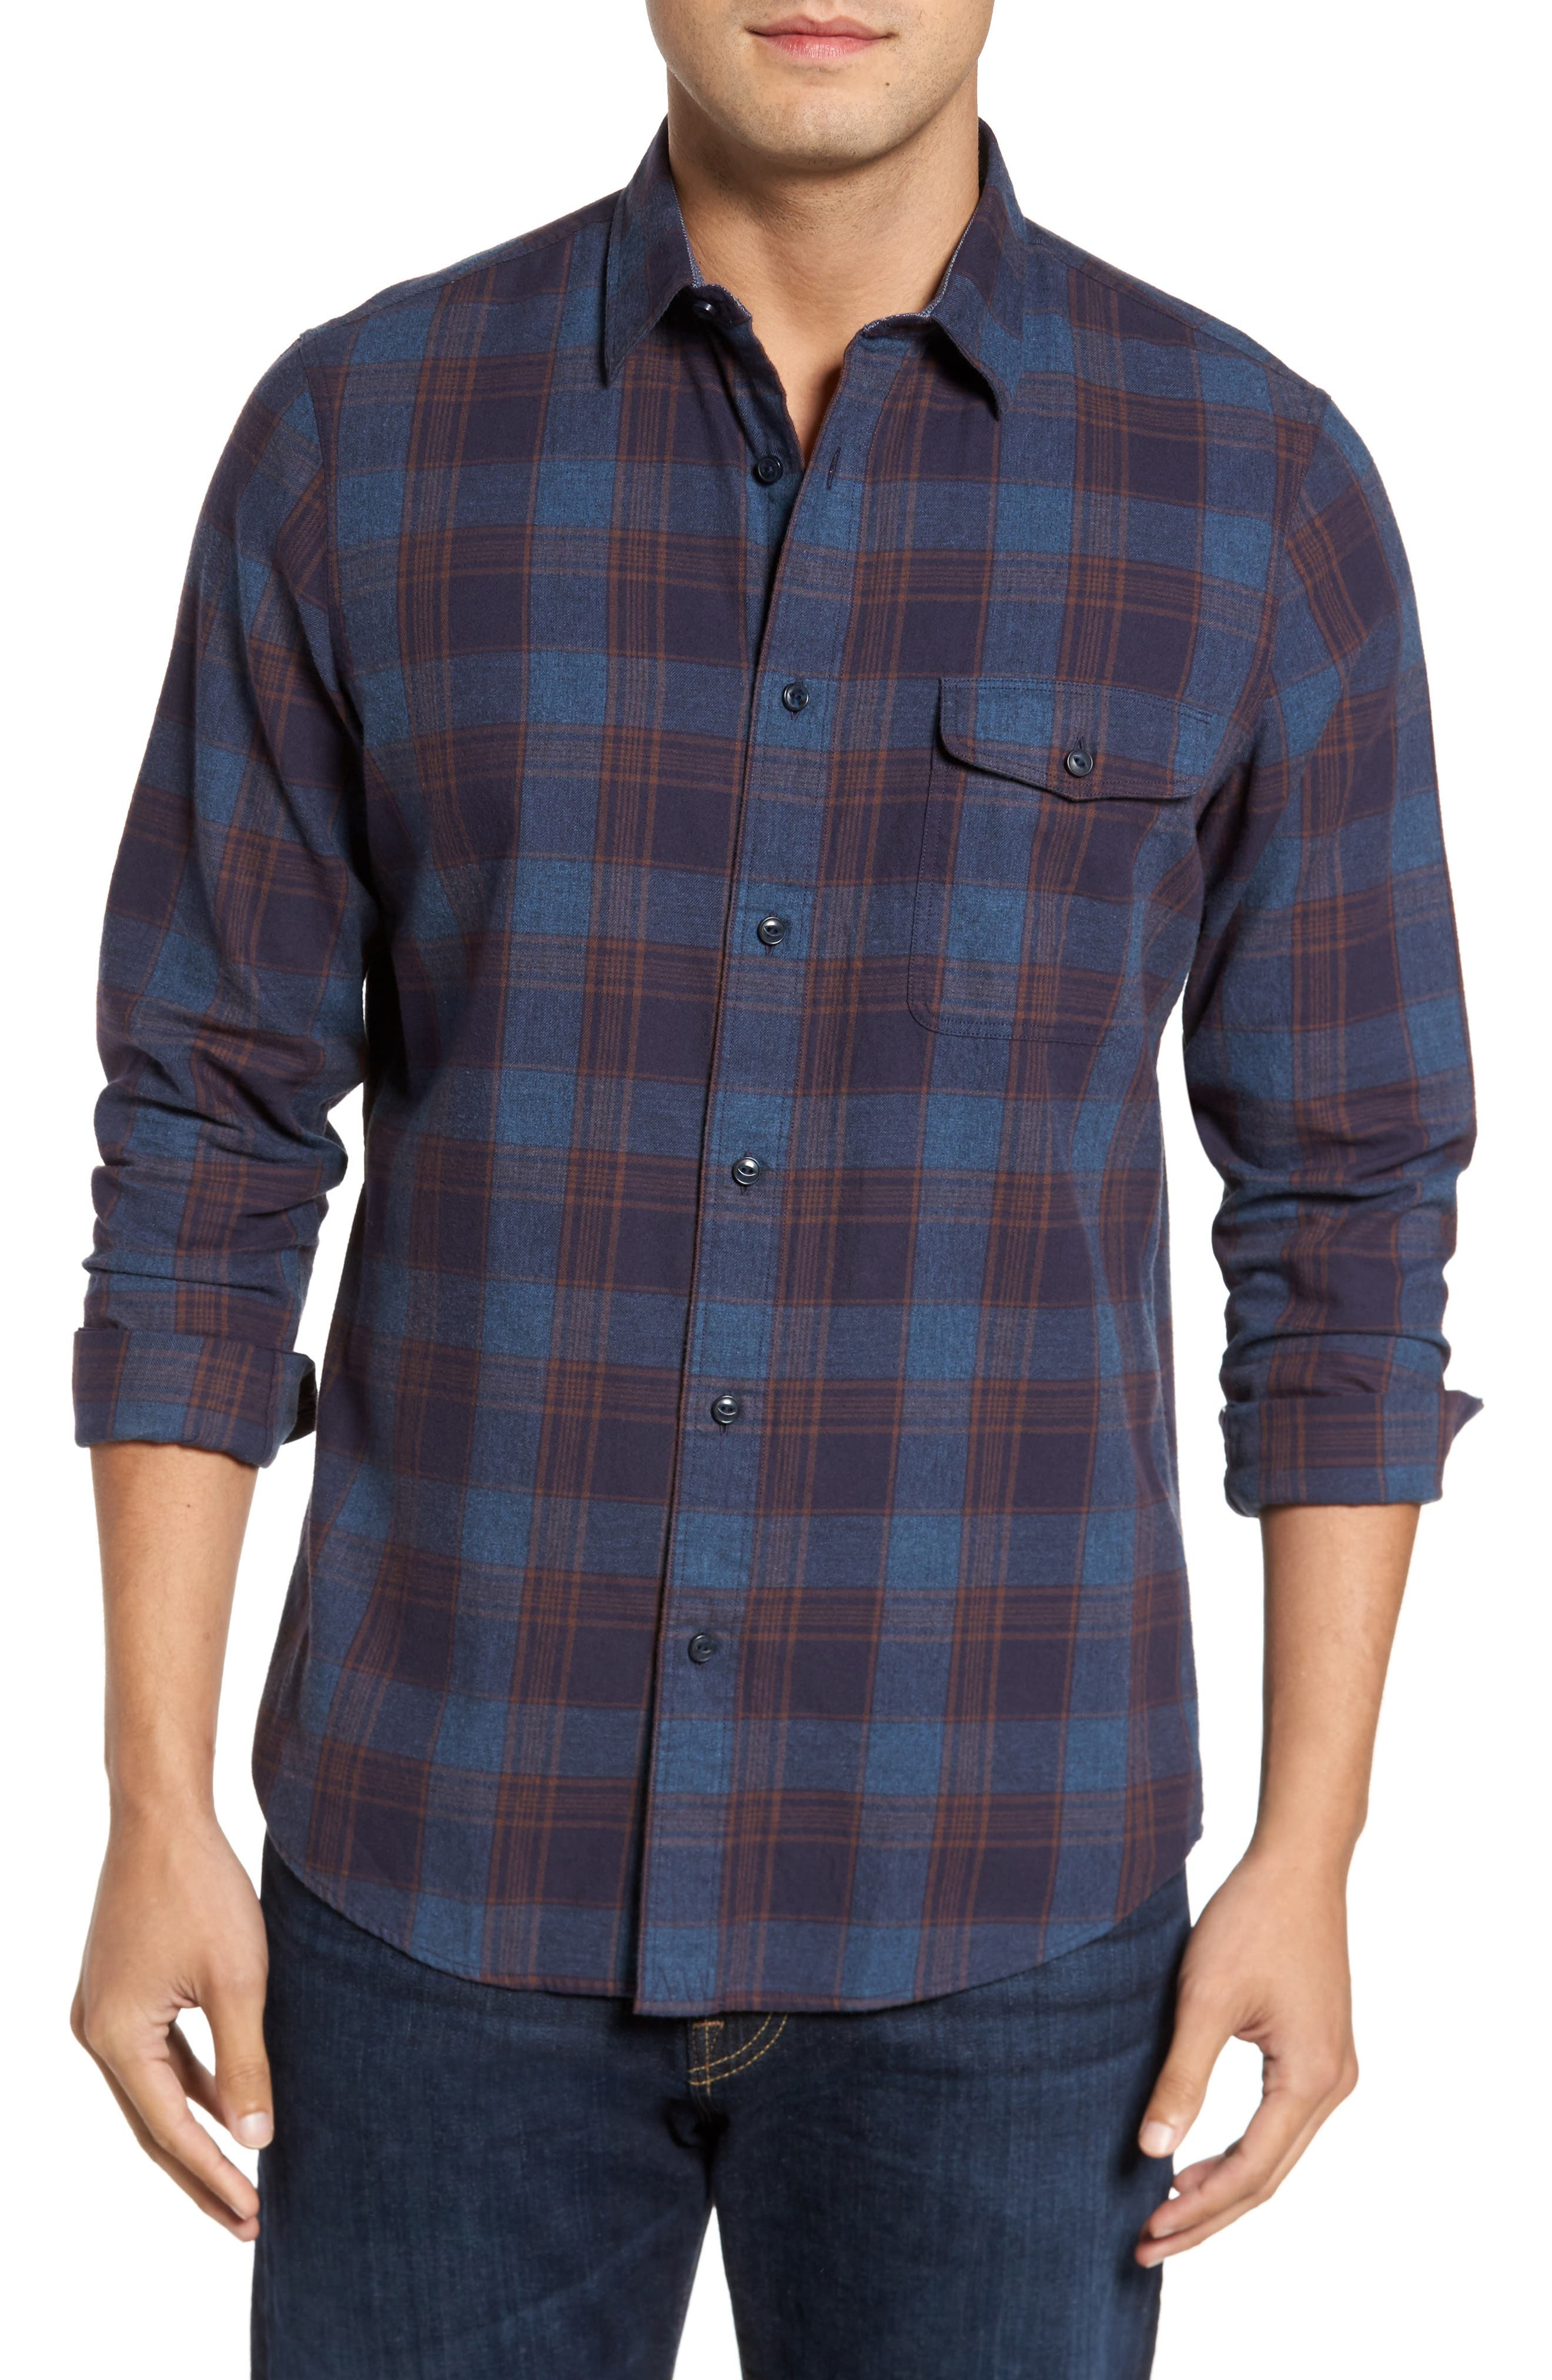 Regular Fit Lumber Check Flannel Shirt,                         Main,                         color, Blue Canal Navy Plaid